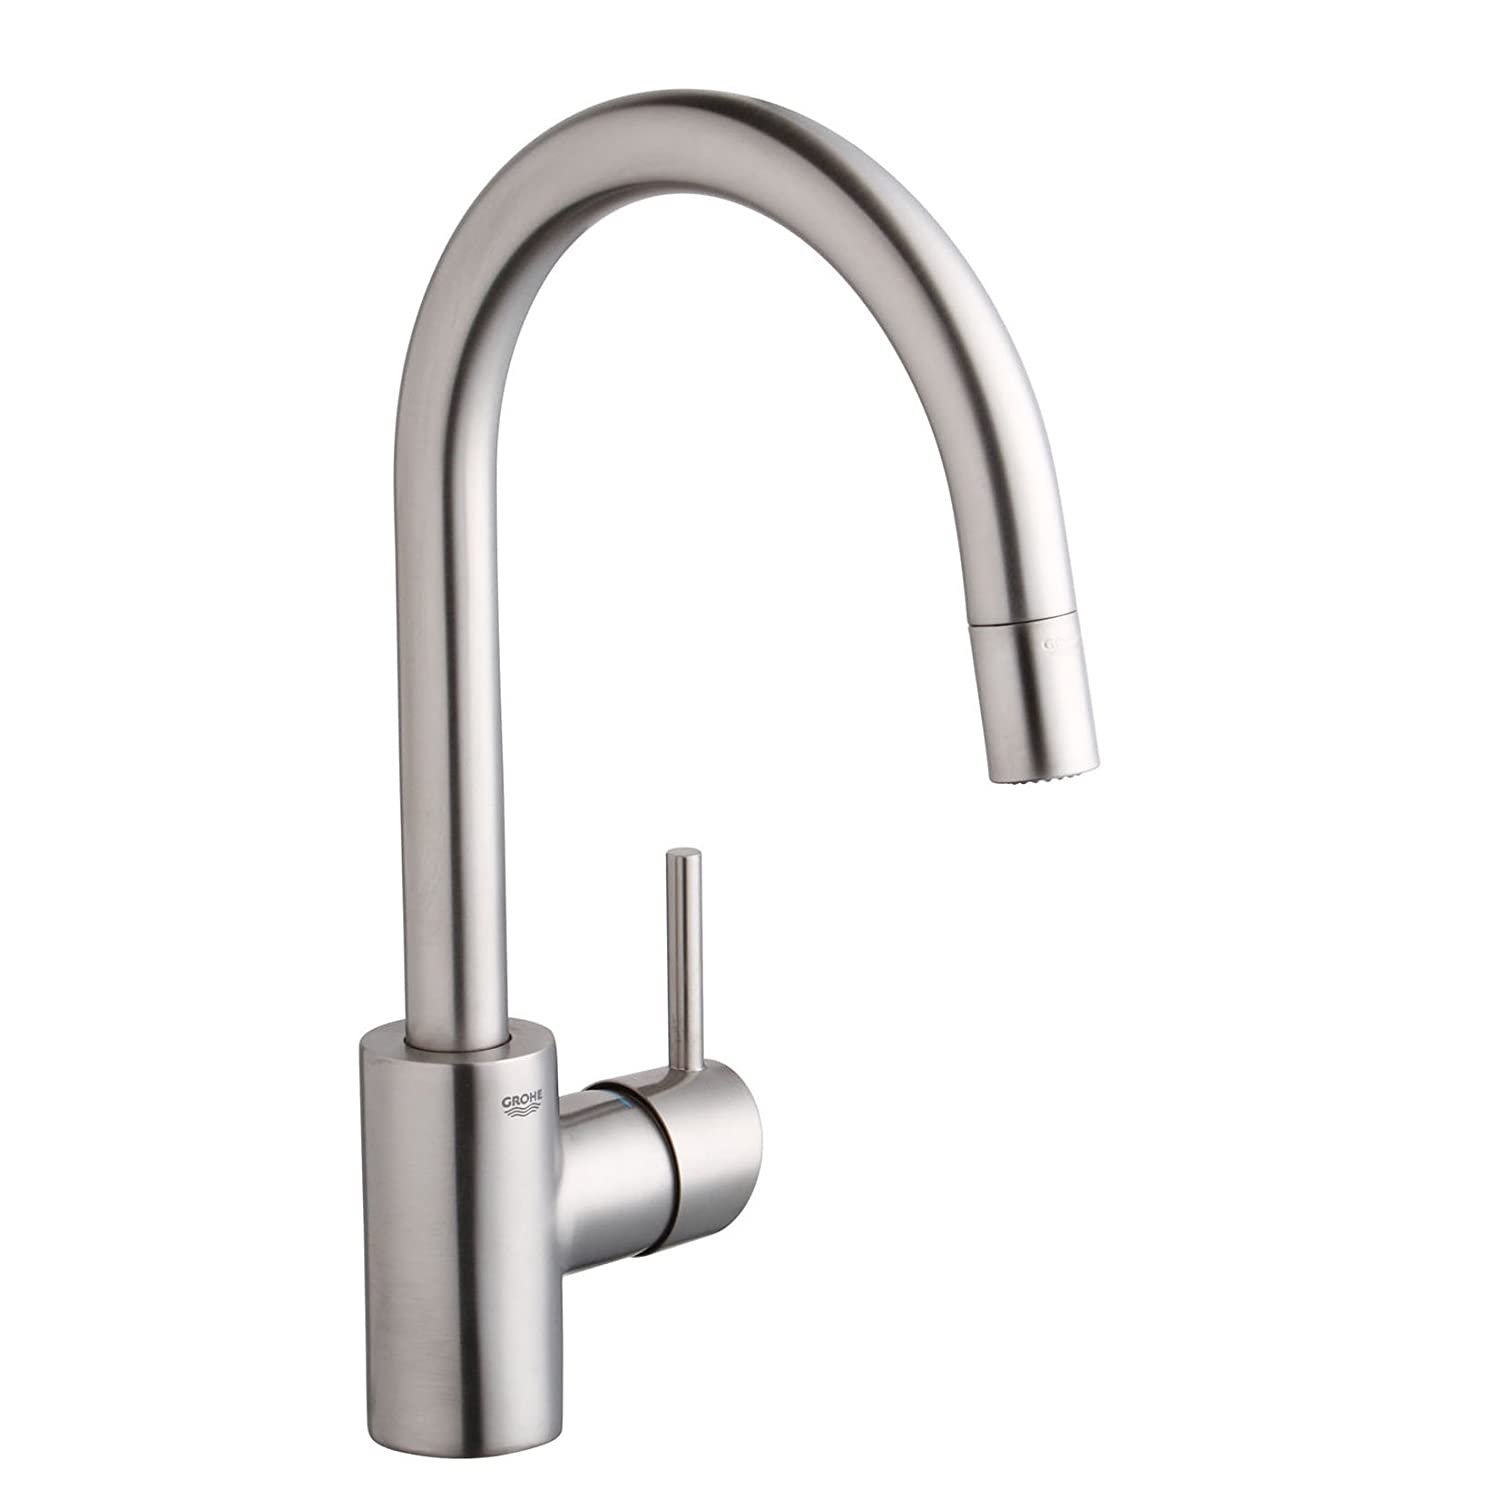 Grohe 32 665 DC0 Concetto Dual Spray Pull Out Kitchen Faucet